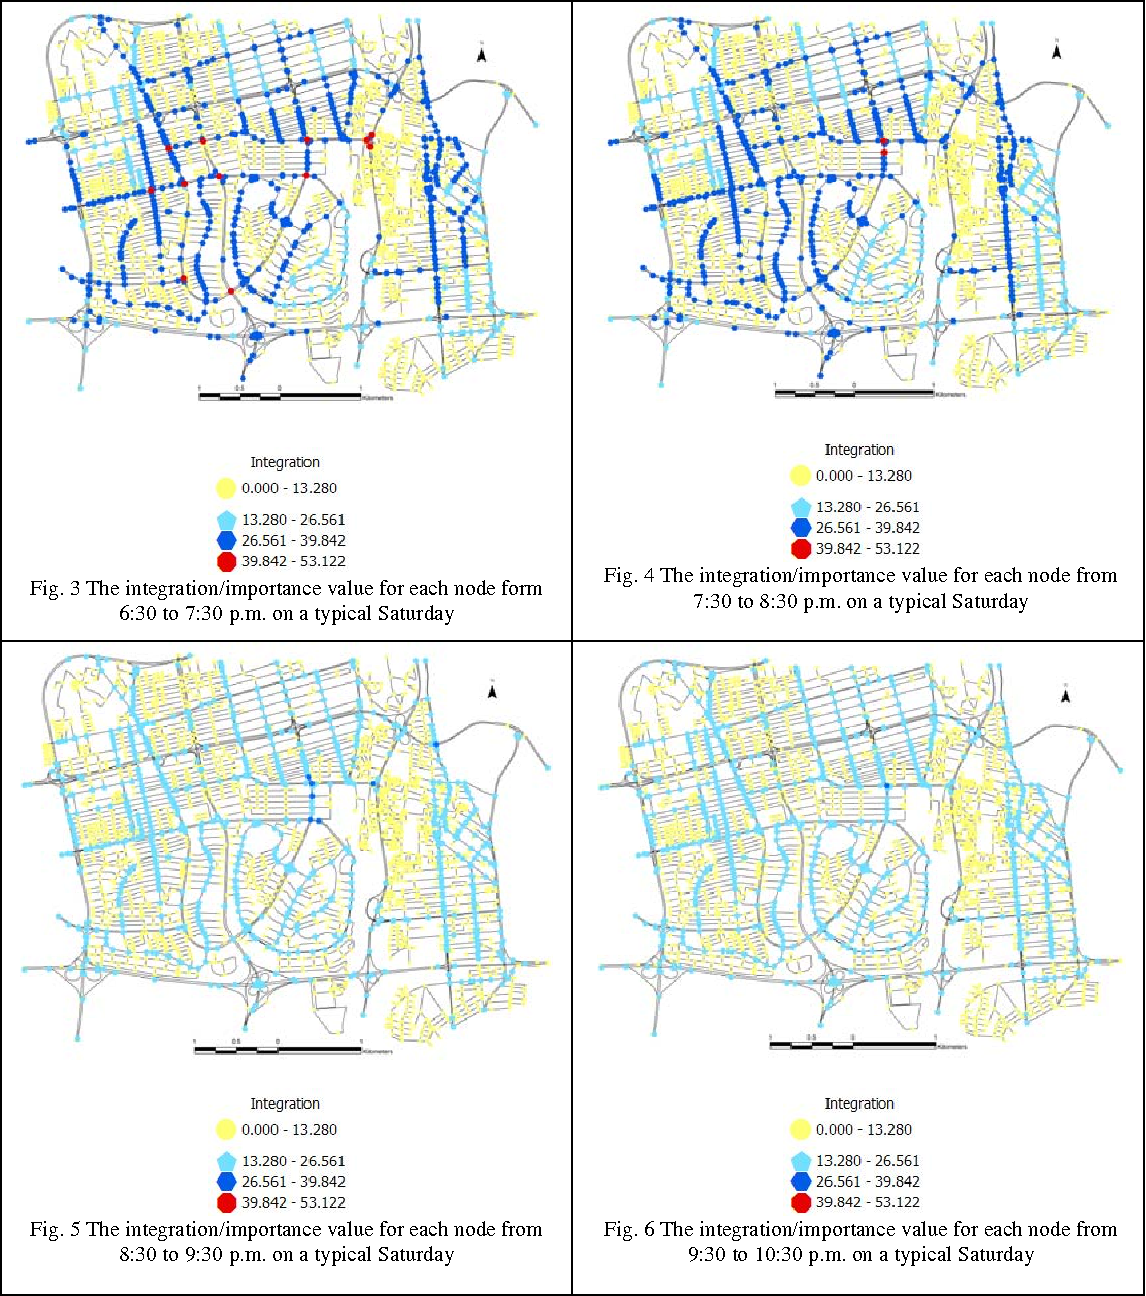 A Gis Based Traffic Control Strategy Planning At Urban Intersections Systems Handbook Chapter 3 Concepts Semantic Scholar